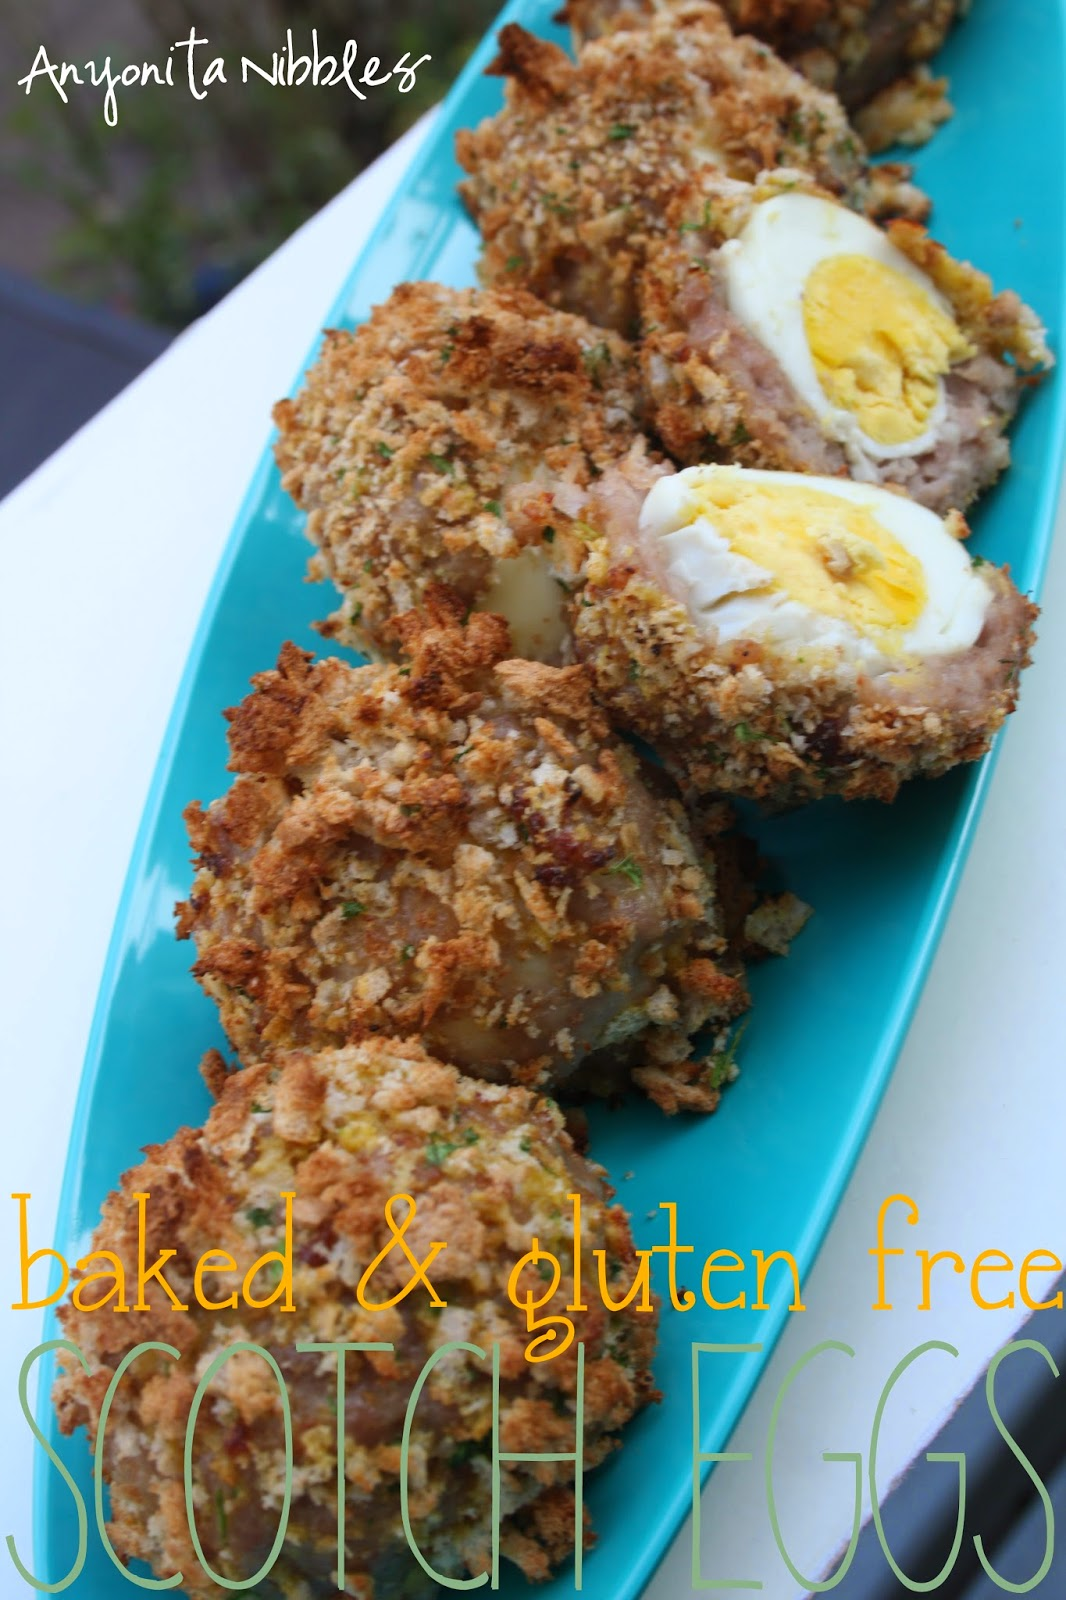 British picnic food: Scotch Eggs made Gluten Free from Anyonita Nibbles